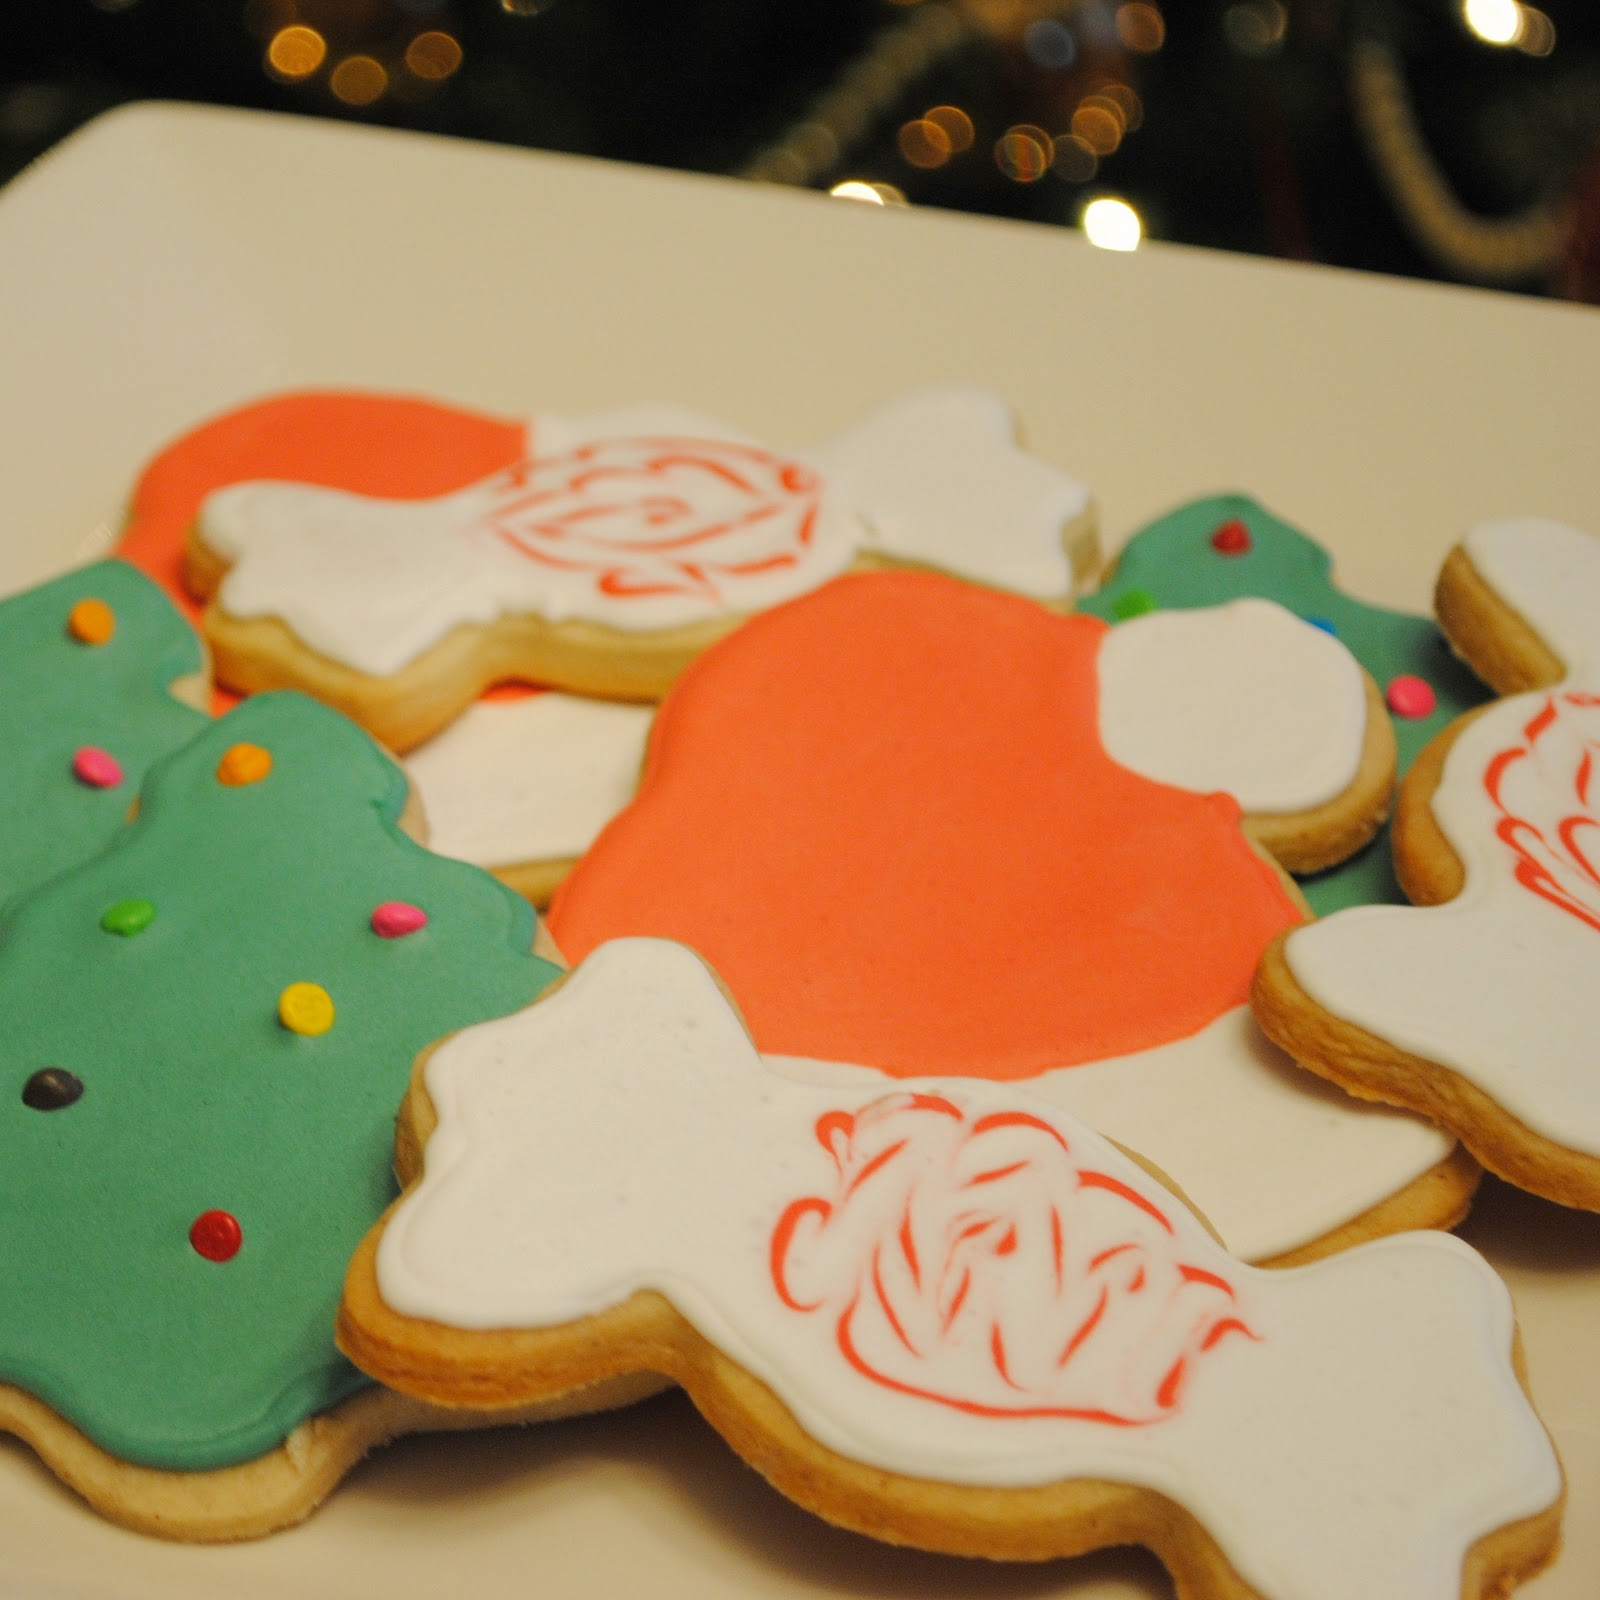 Homemade By Holman: Spiced Brown Sugar Christmas Cookies